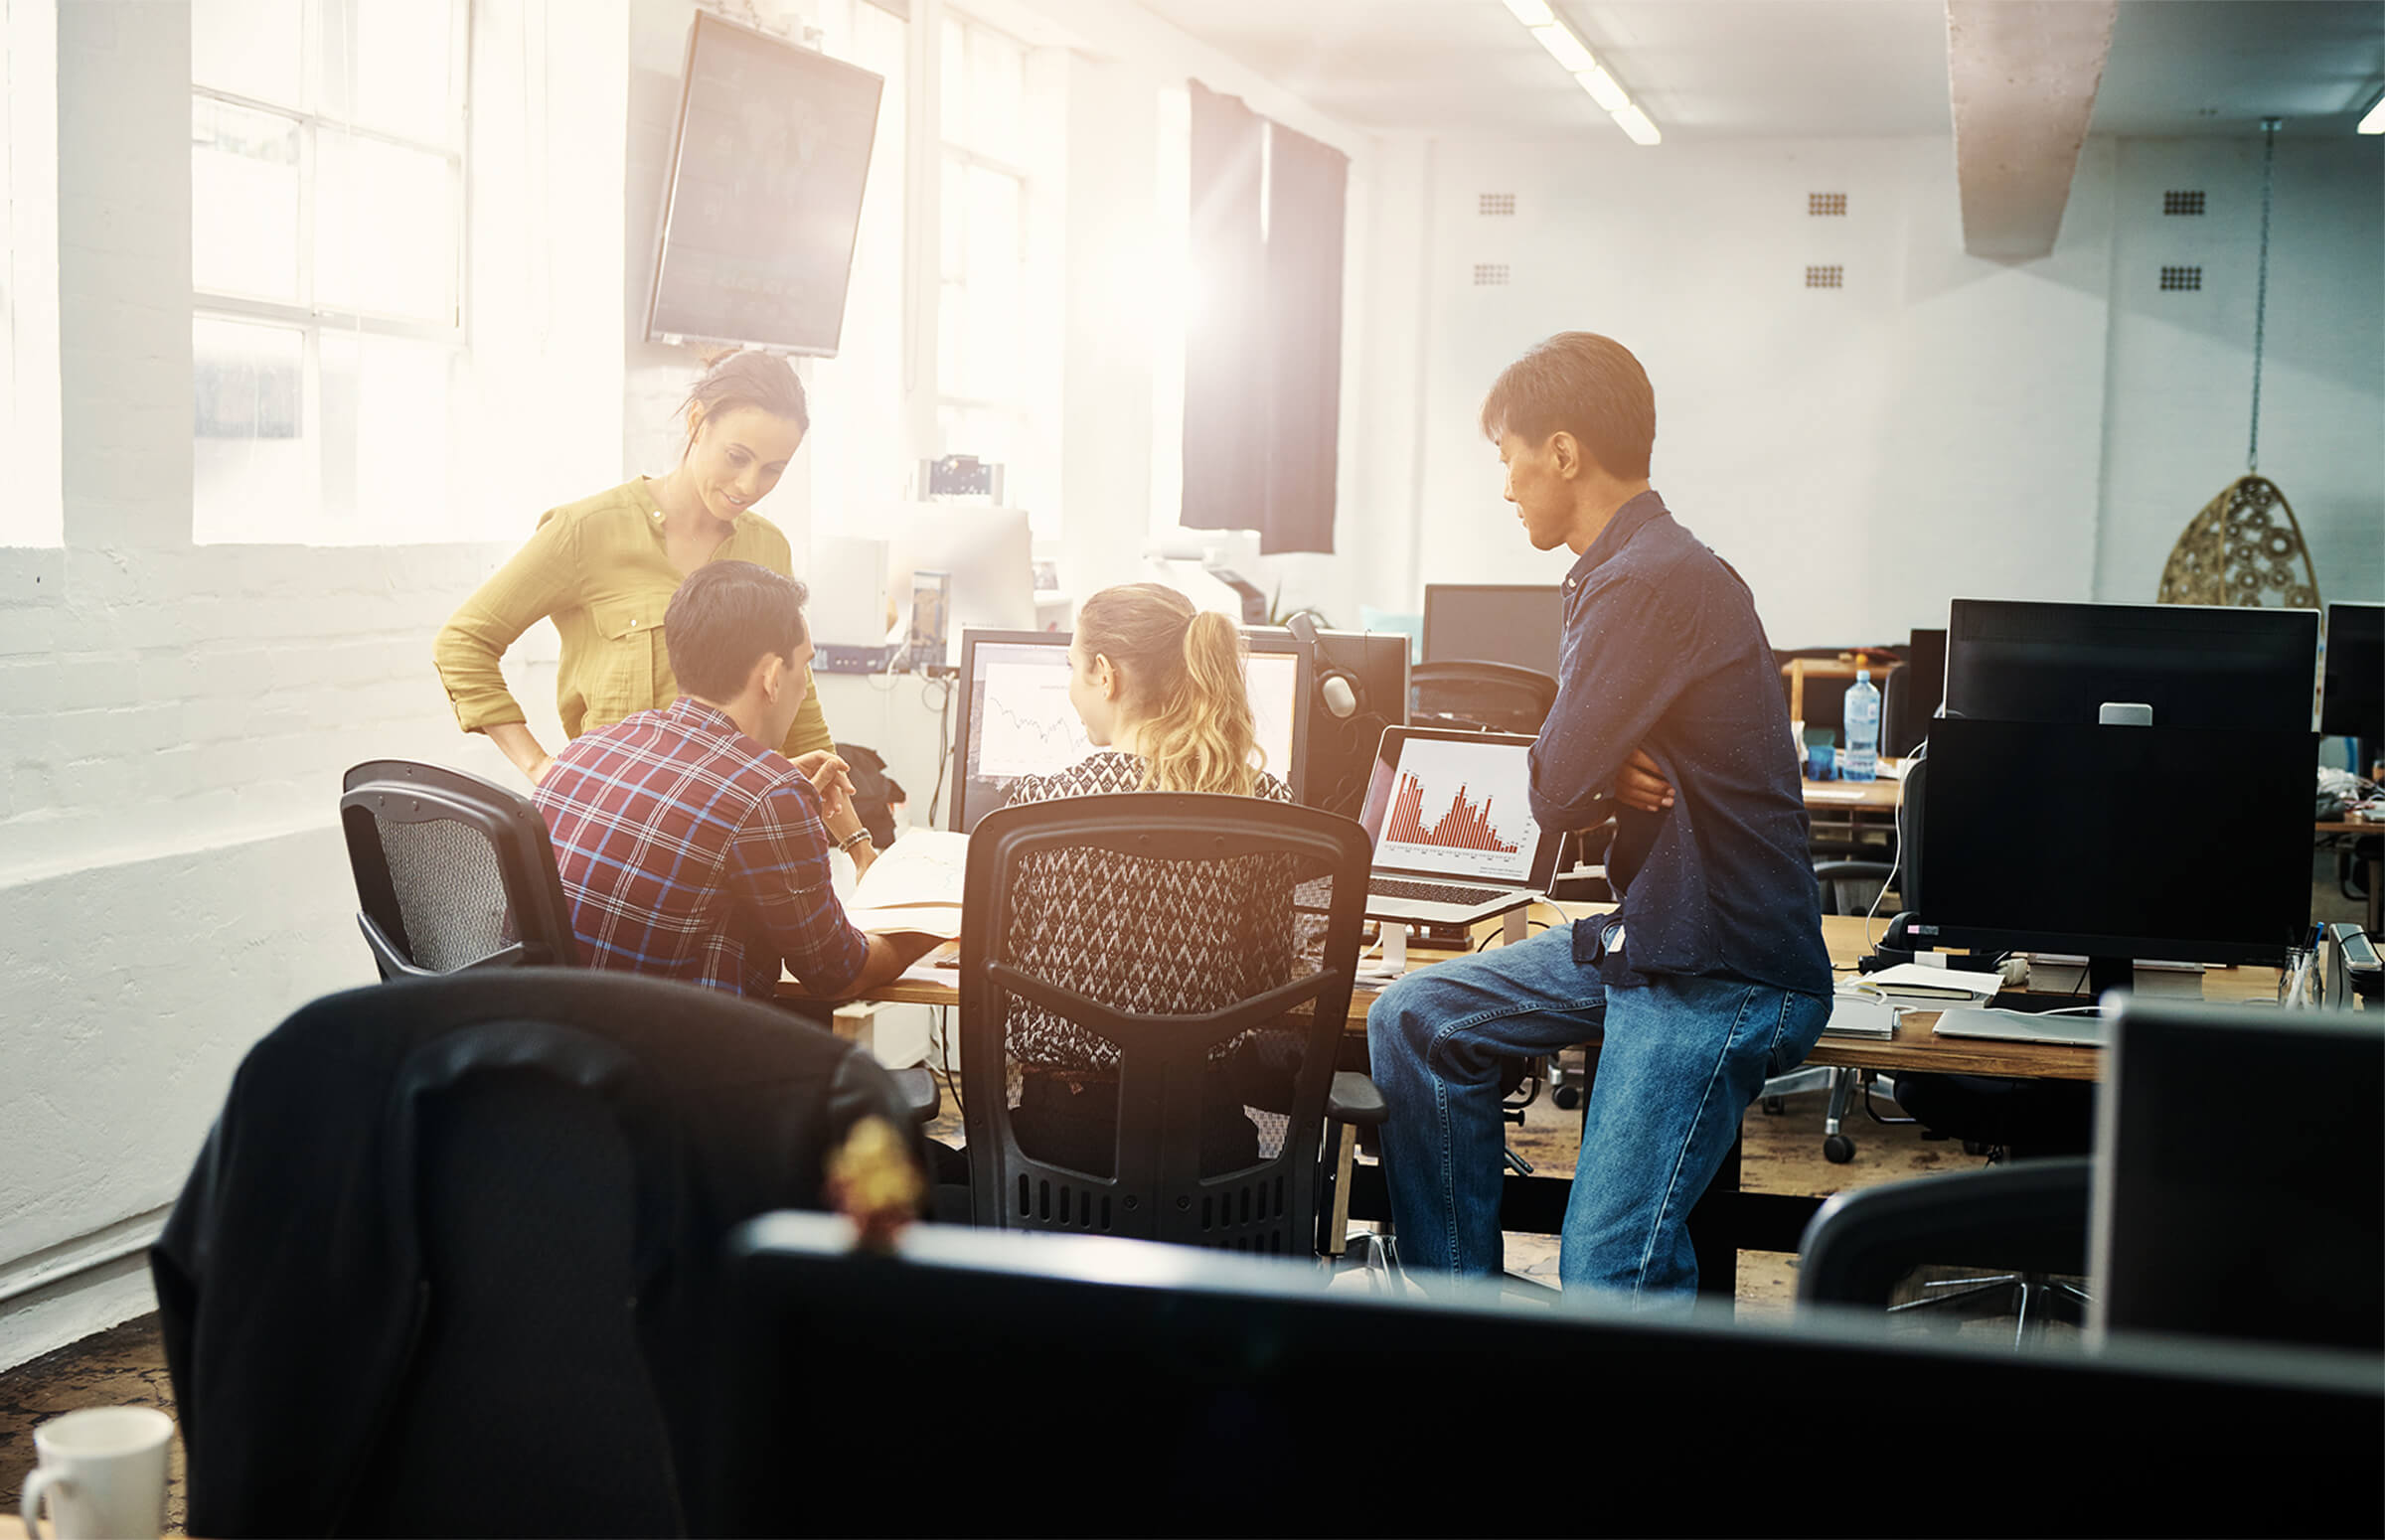 Group of people sitting together in office